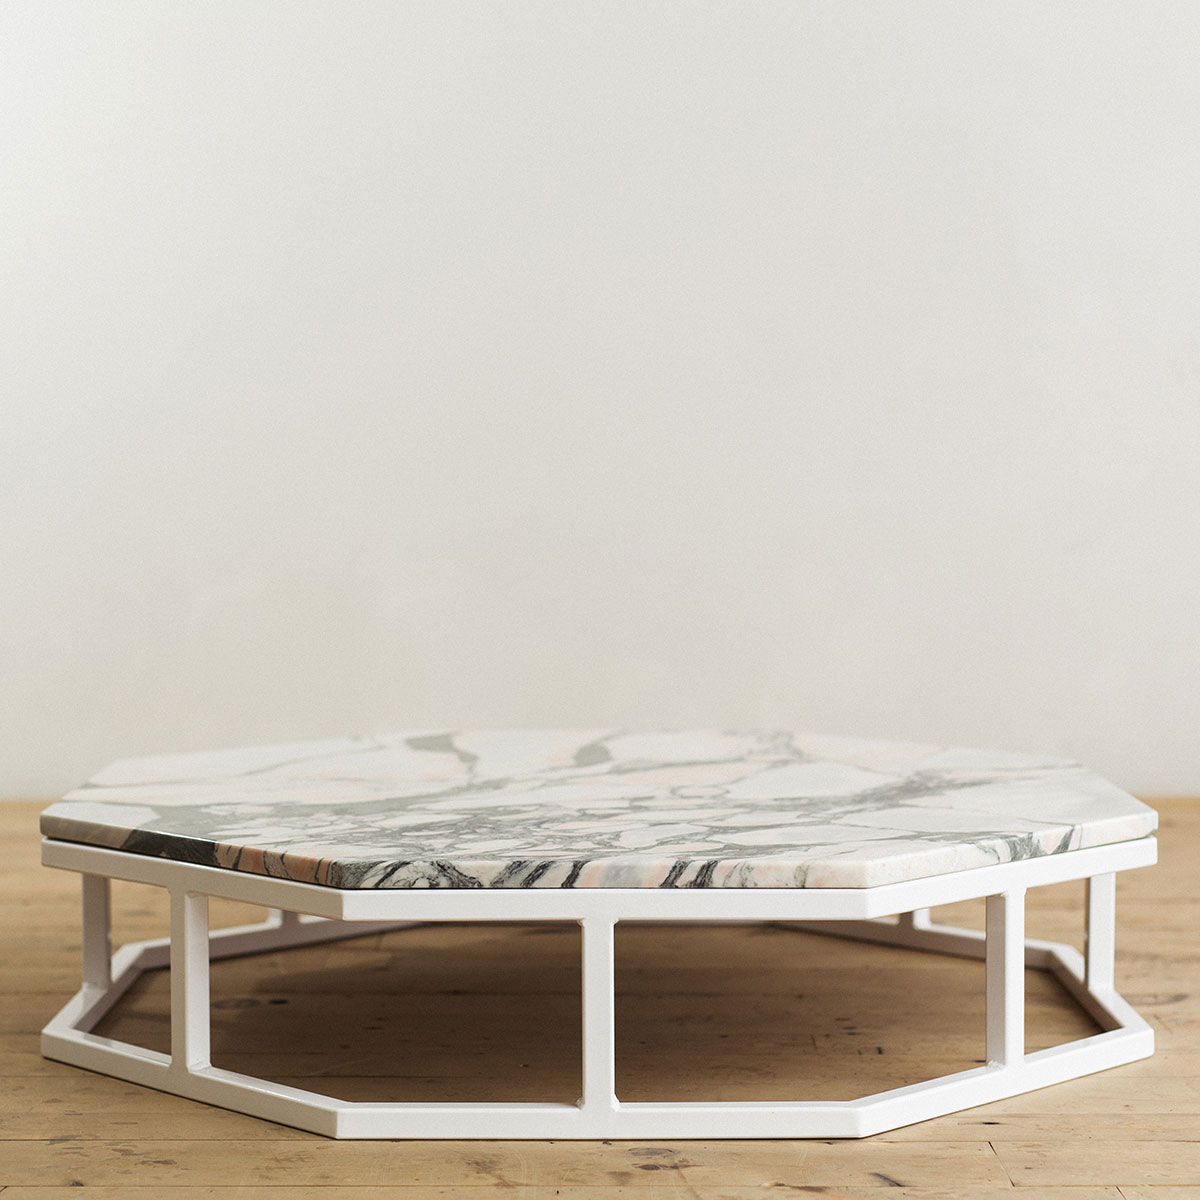 octagon-steel-marble-coffee-table-white-2